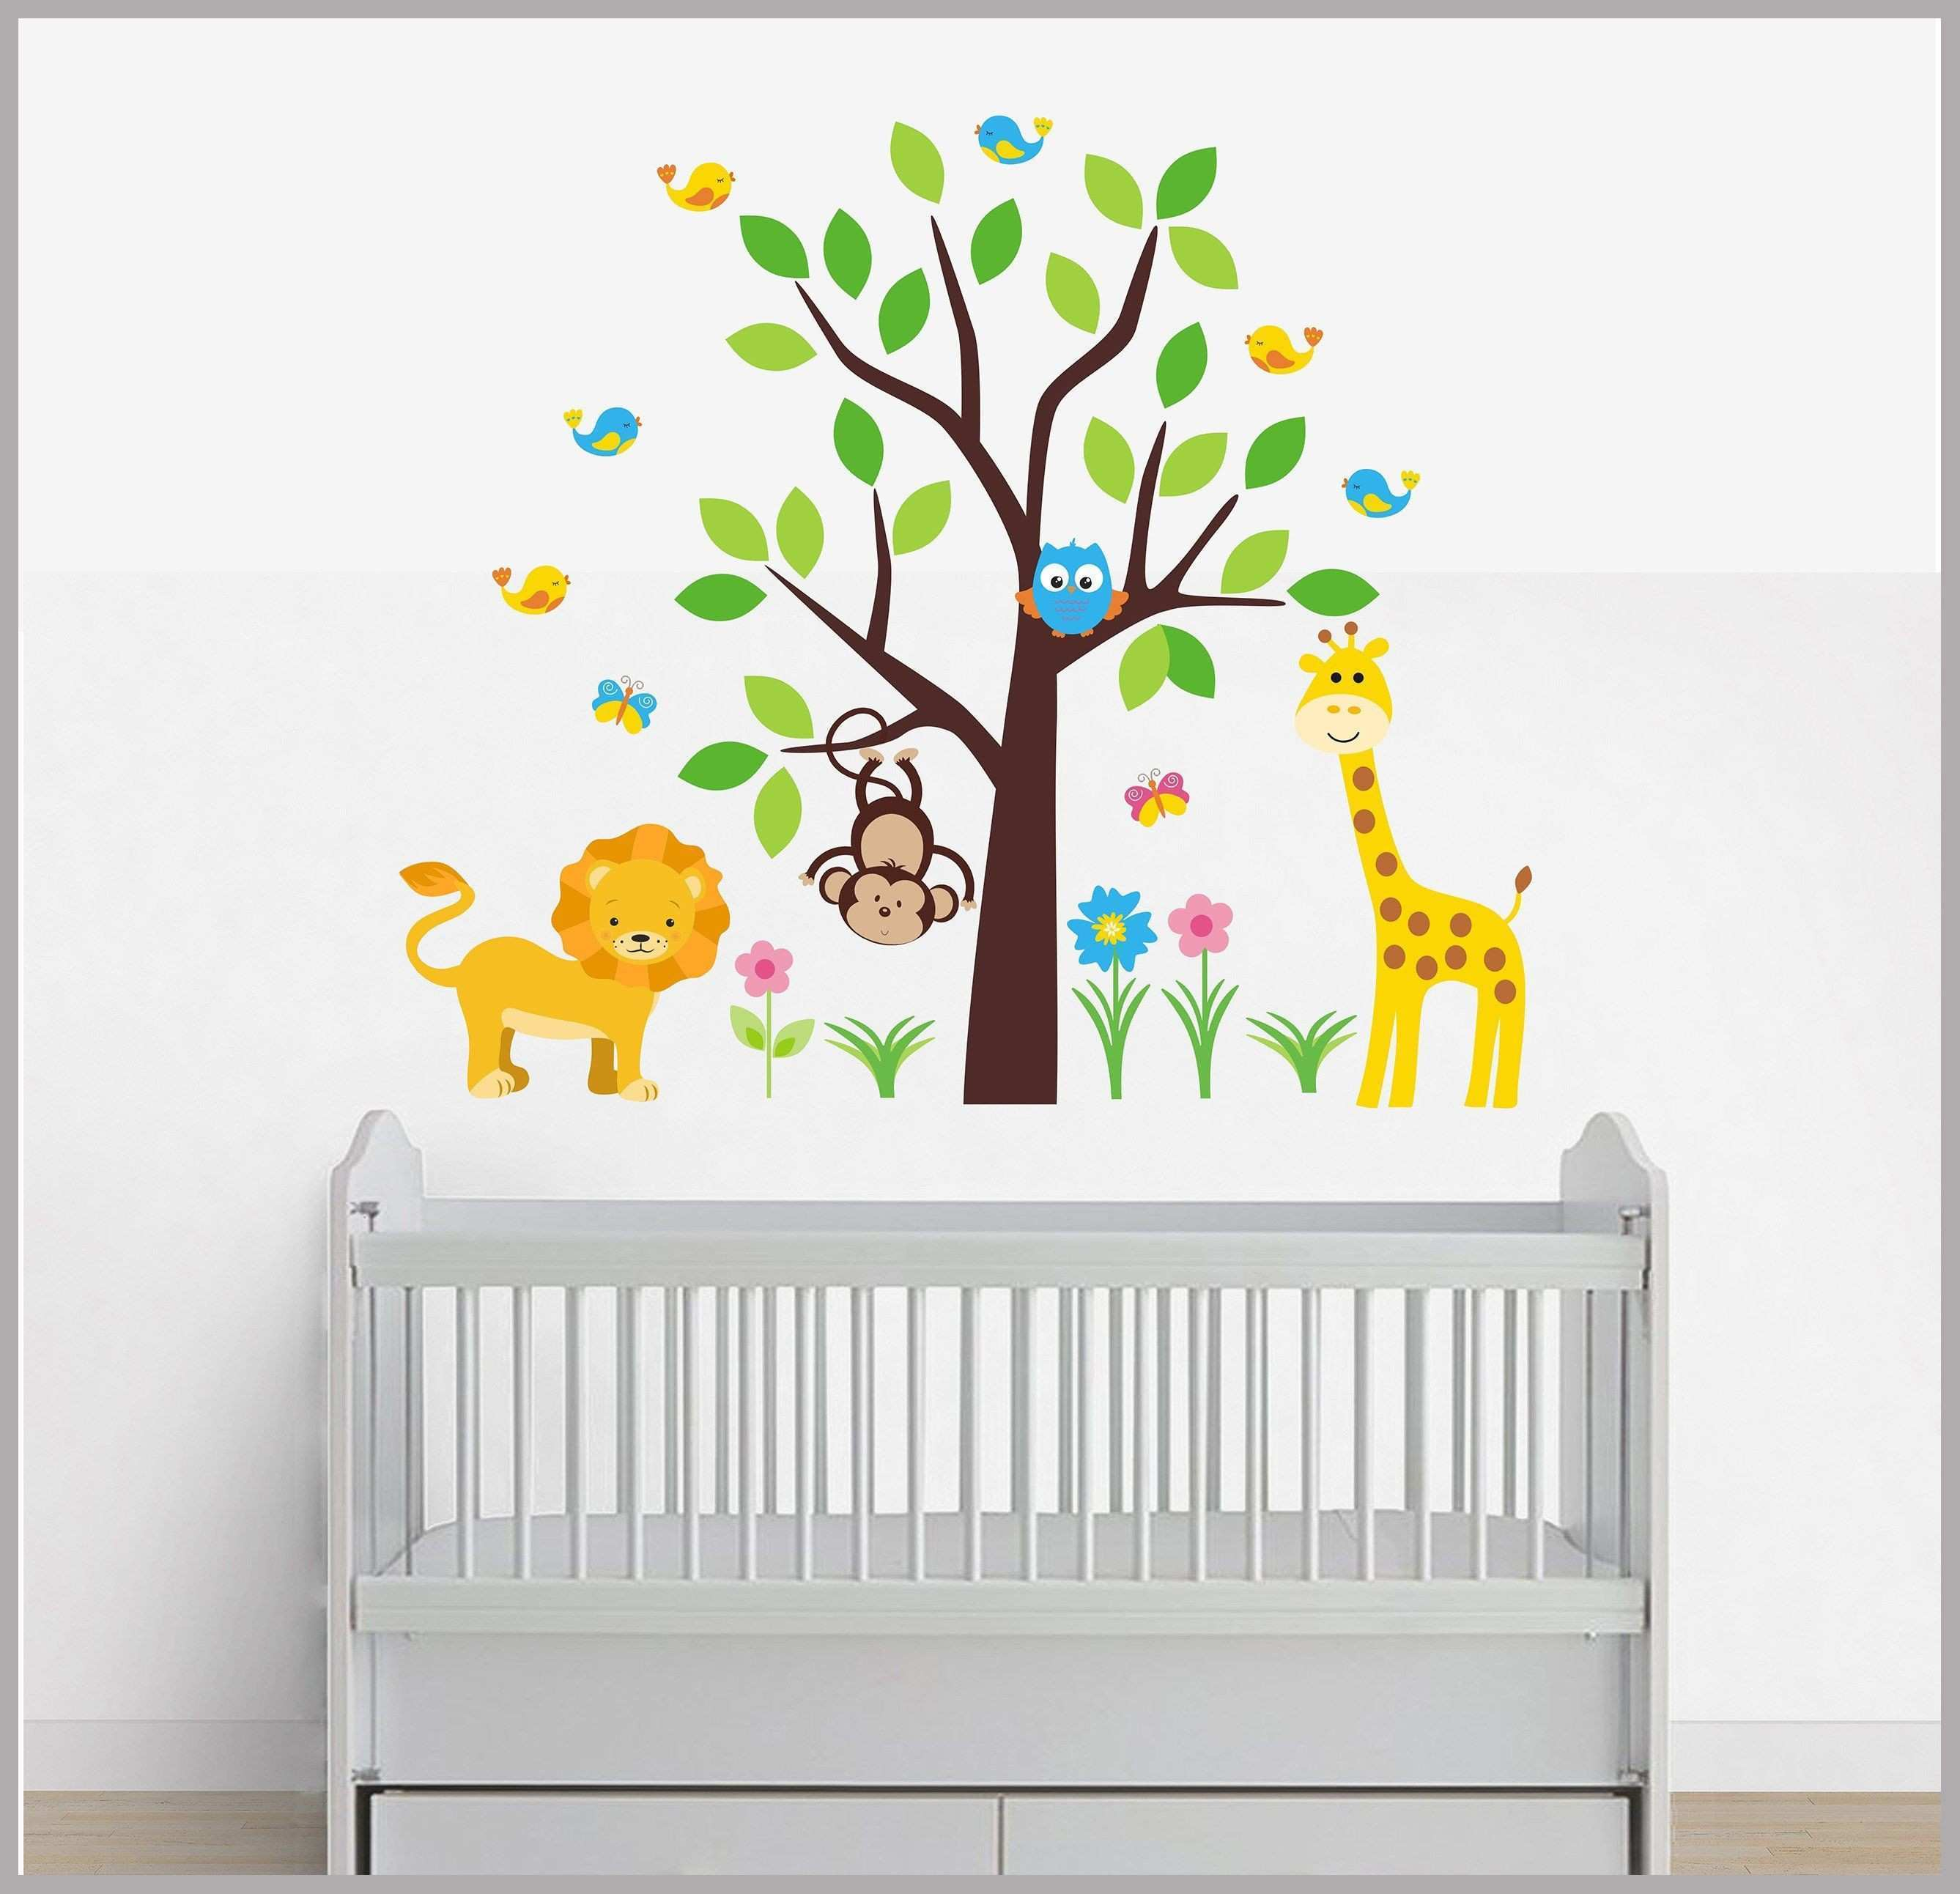 38 Best Peel and Stick Wall Art